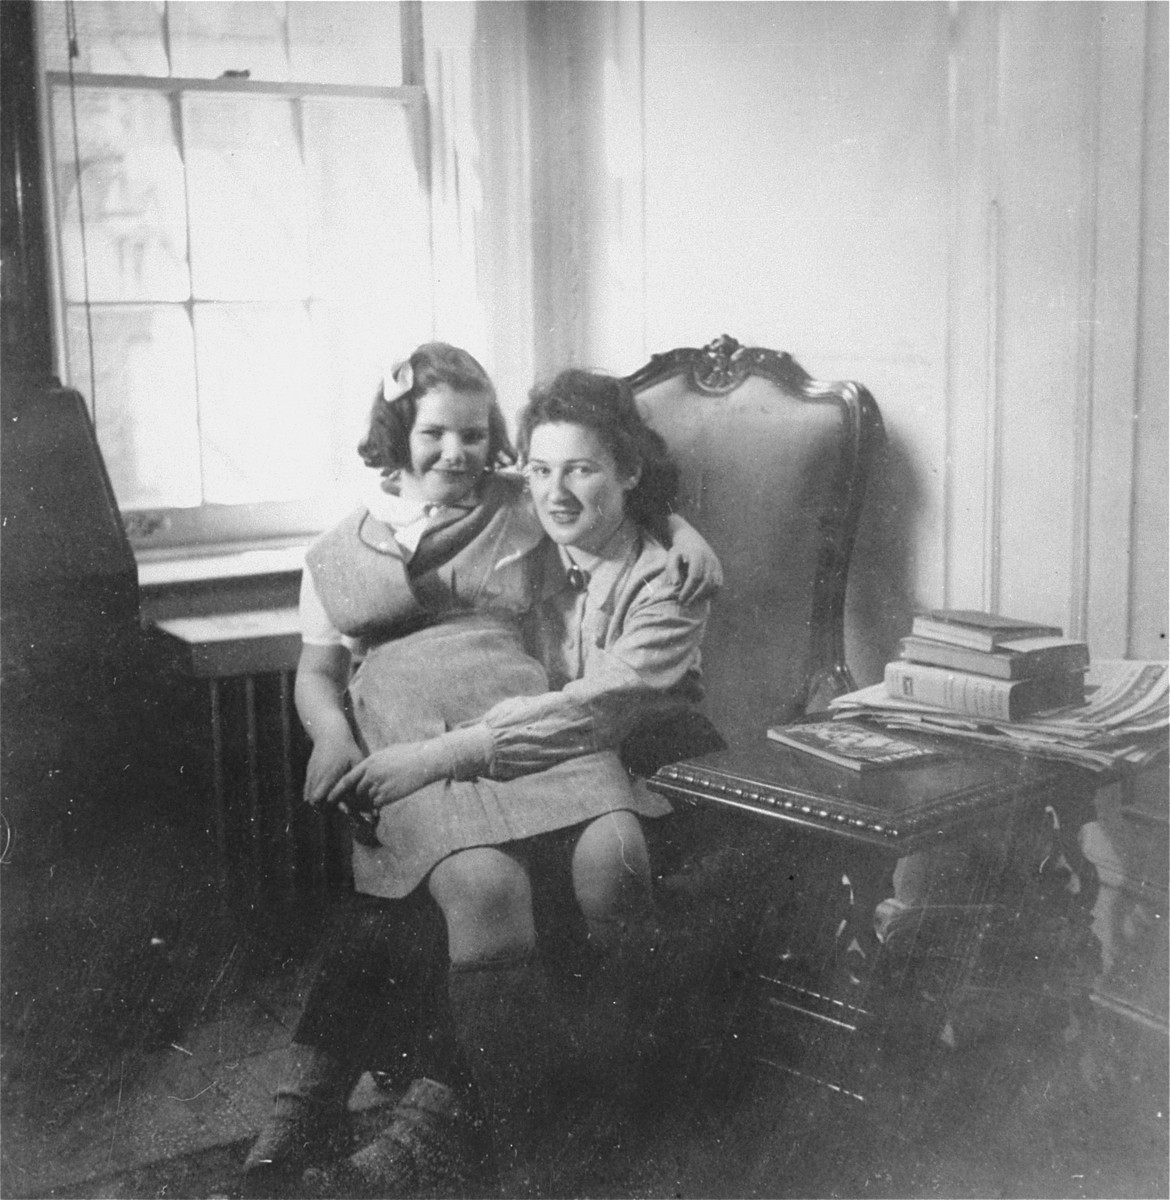 Two Jewish sisters who survived the war hiding in France, pose in their room shortly after their arrival in the United States.   Pictured are Jacqueline Glicenstein with her younger sister, Josette,